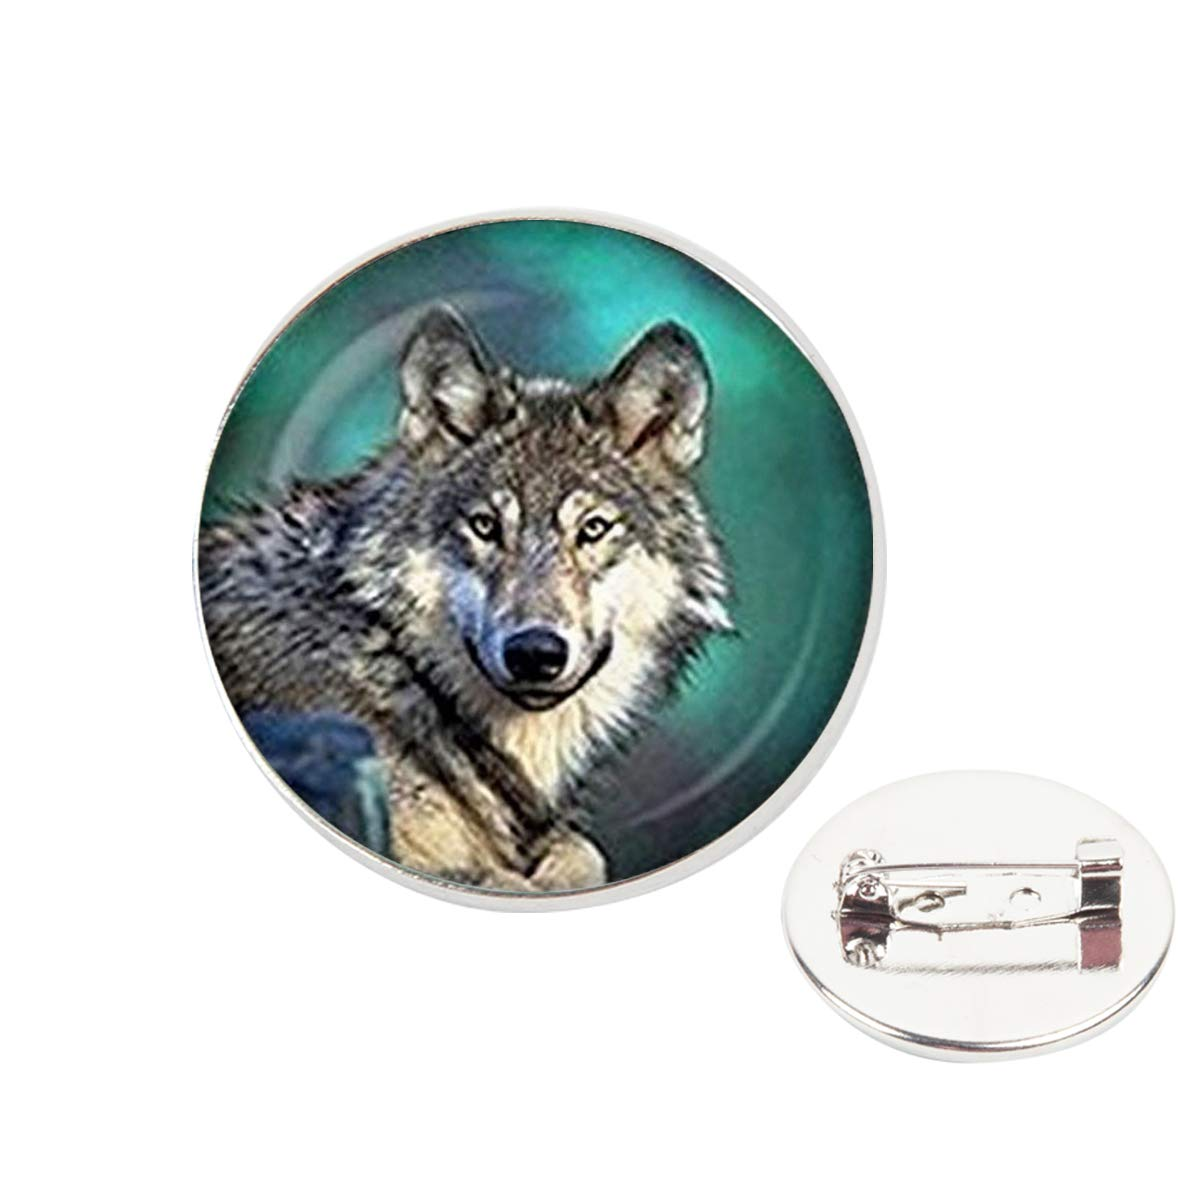 Pinback Buttons Badges Pins Lone Wolf Lapel Pin Brooch Clip Trendy Accessory Jacket T-Shirt Bag Hat Shoe